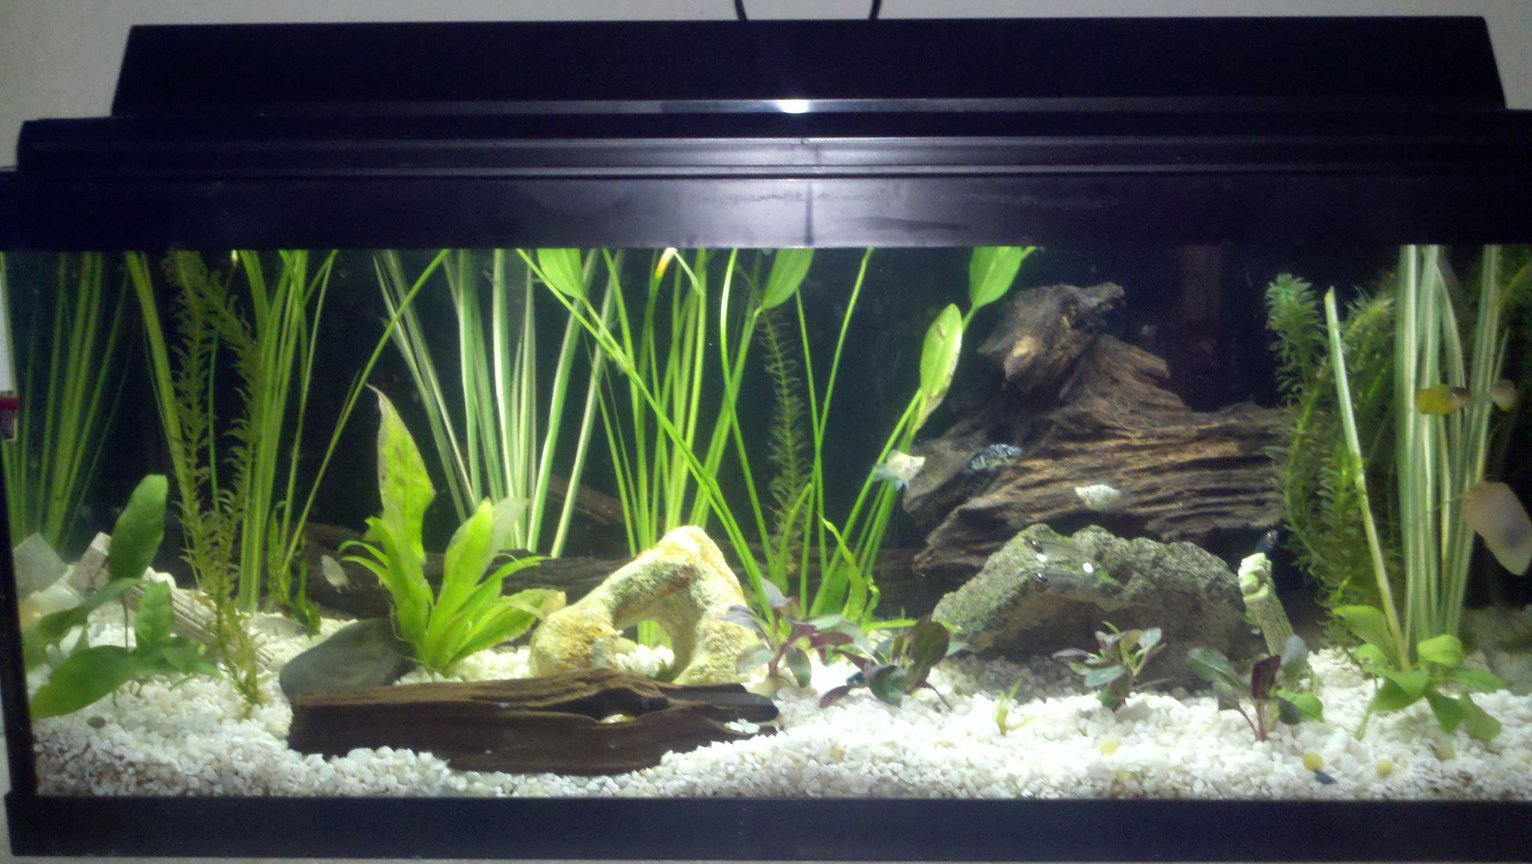 20 gallons planted tank (mostly live plants and fish) - all live plants(17 total) and fish(5 glass catfish, 2 yellow khili fish, 2 small red bellied newts, 3 snails, 1 small albino plecostamous, 3 white balloon mollys, 2 black/white speckled mollys, multiple ghost shrimp), 5 driftwood peices